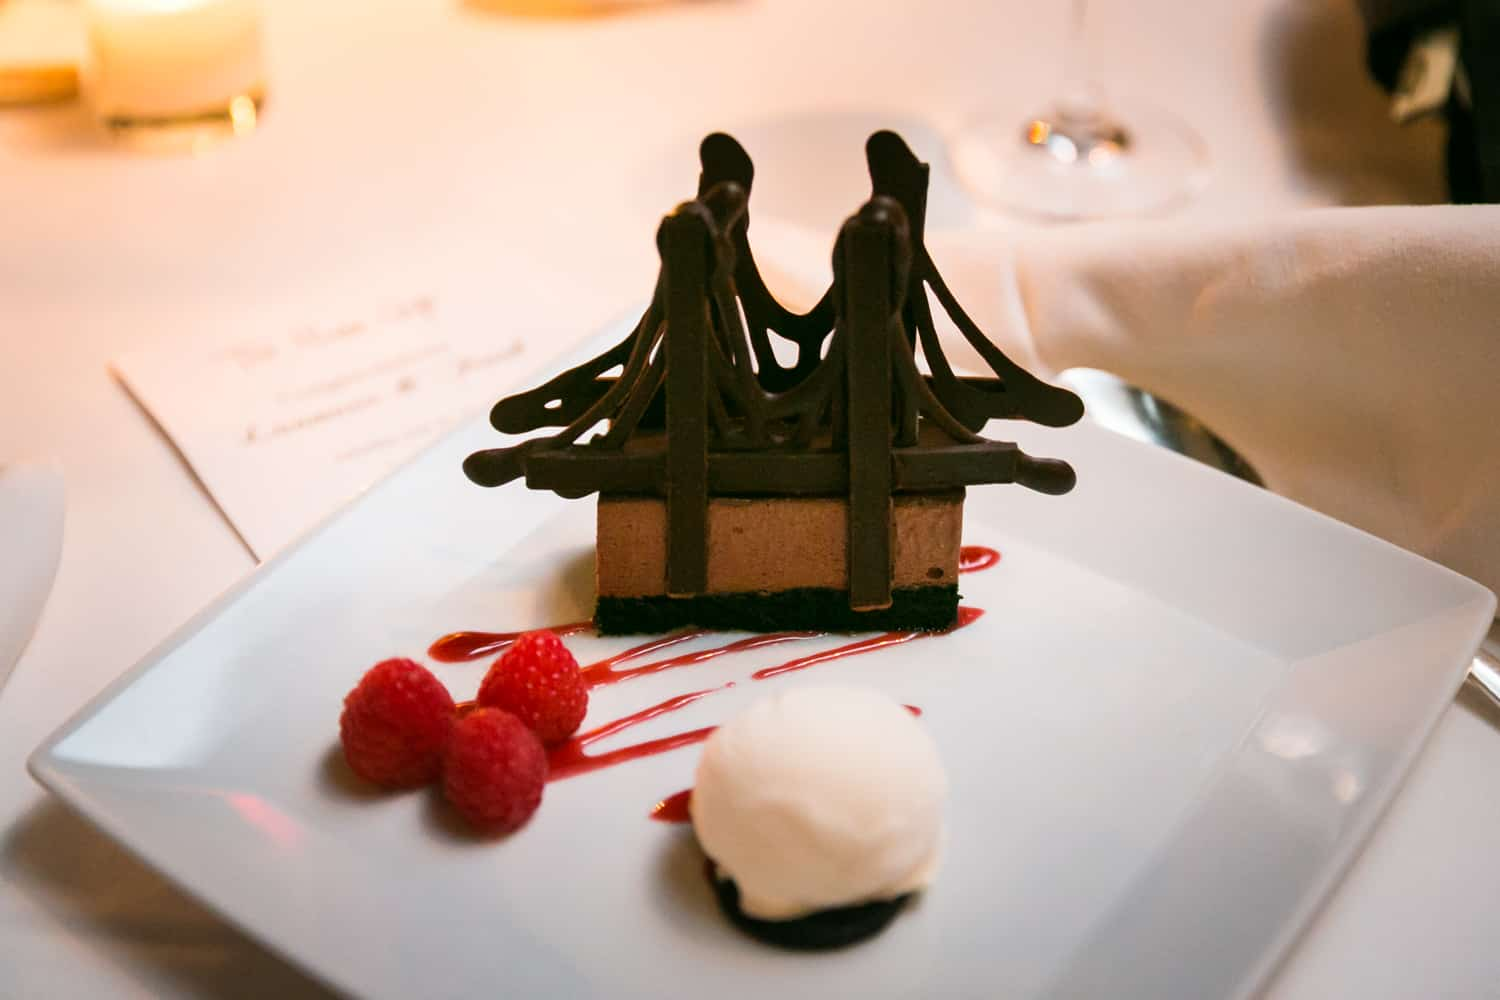 Chocolate dessert in the shape of the Brooklyn Bridge